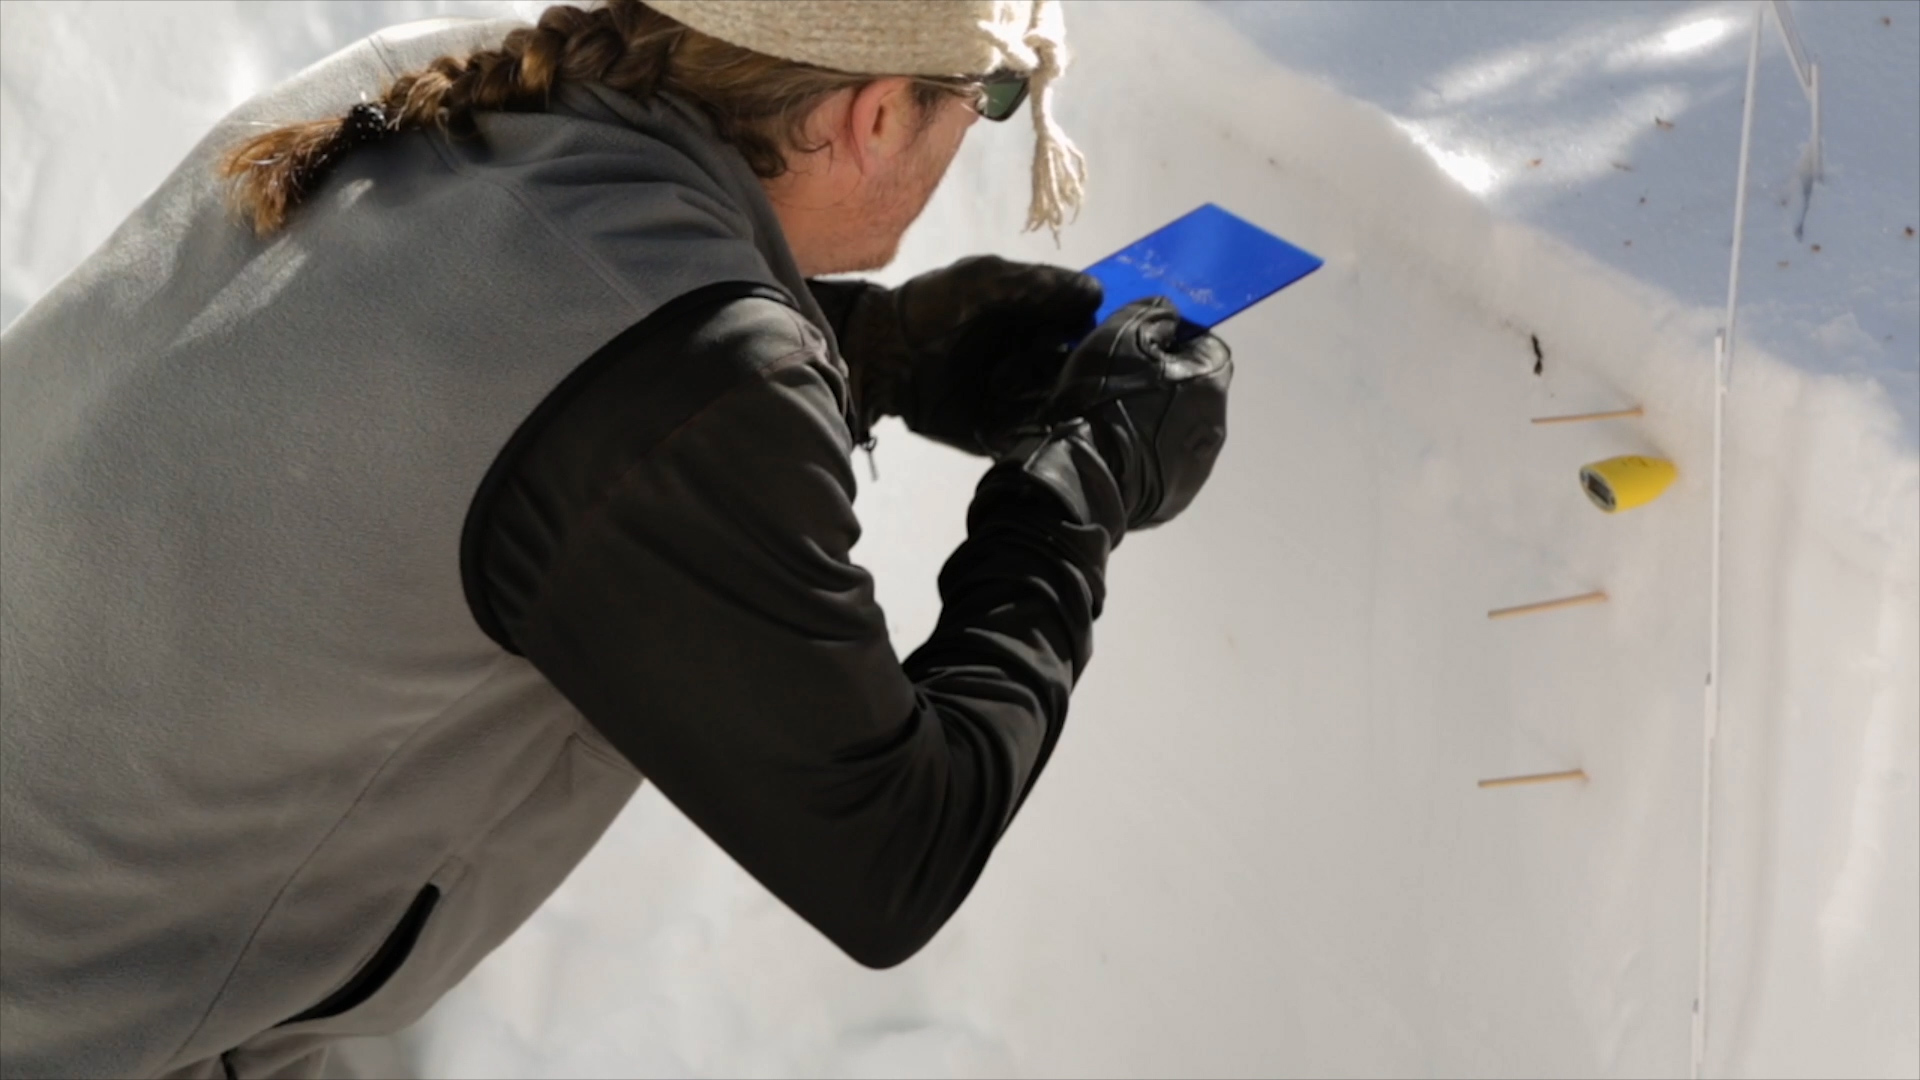 Researchers currently gather snow data the old-fashioned way - in the field.